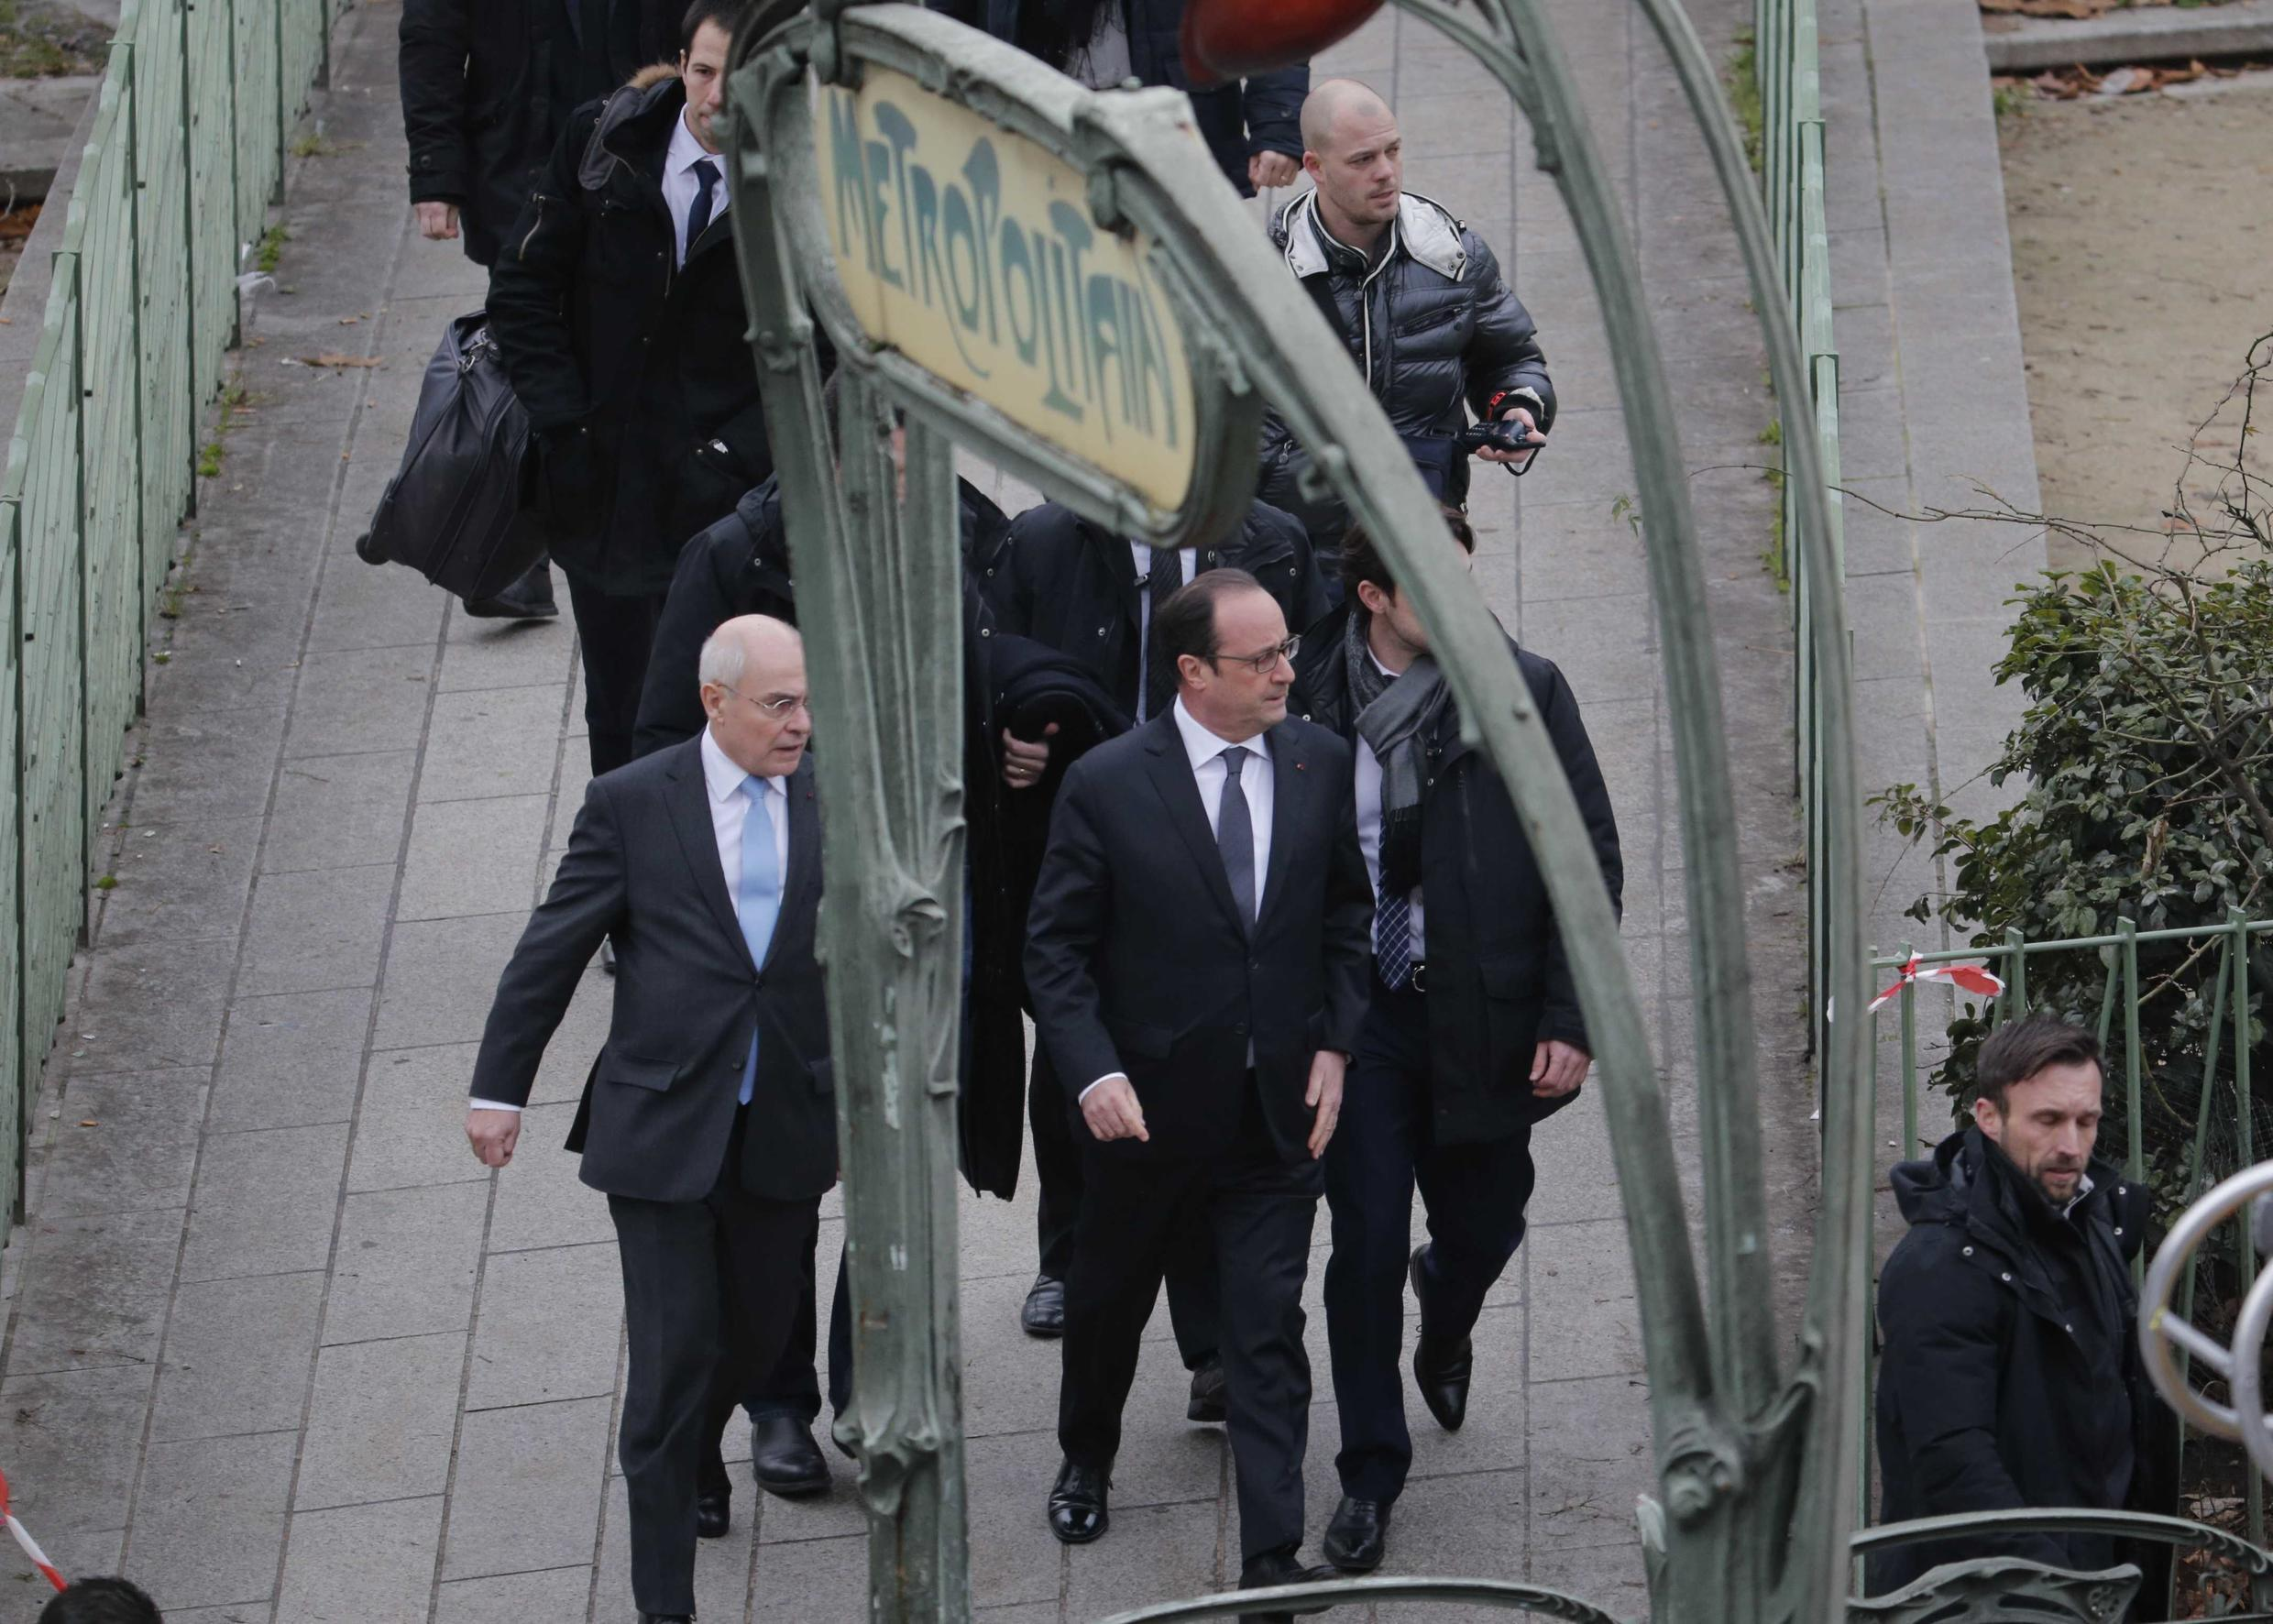 French President François Hollande (C) arrives at the scene of the attack on Charlie Hebdo's offices